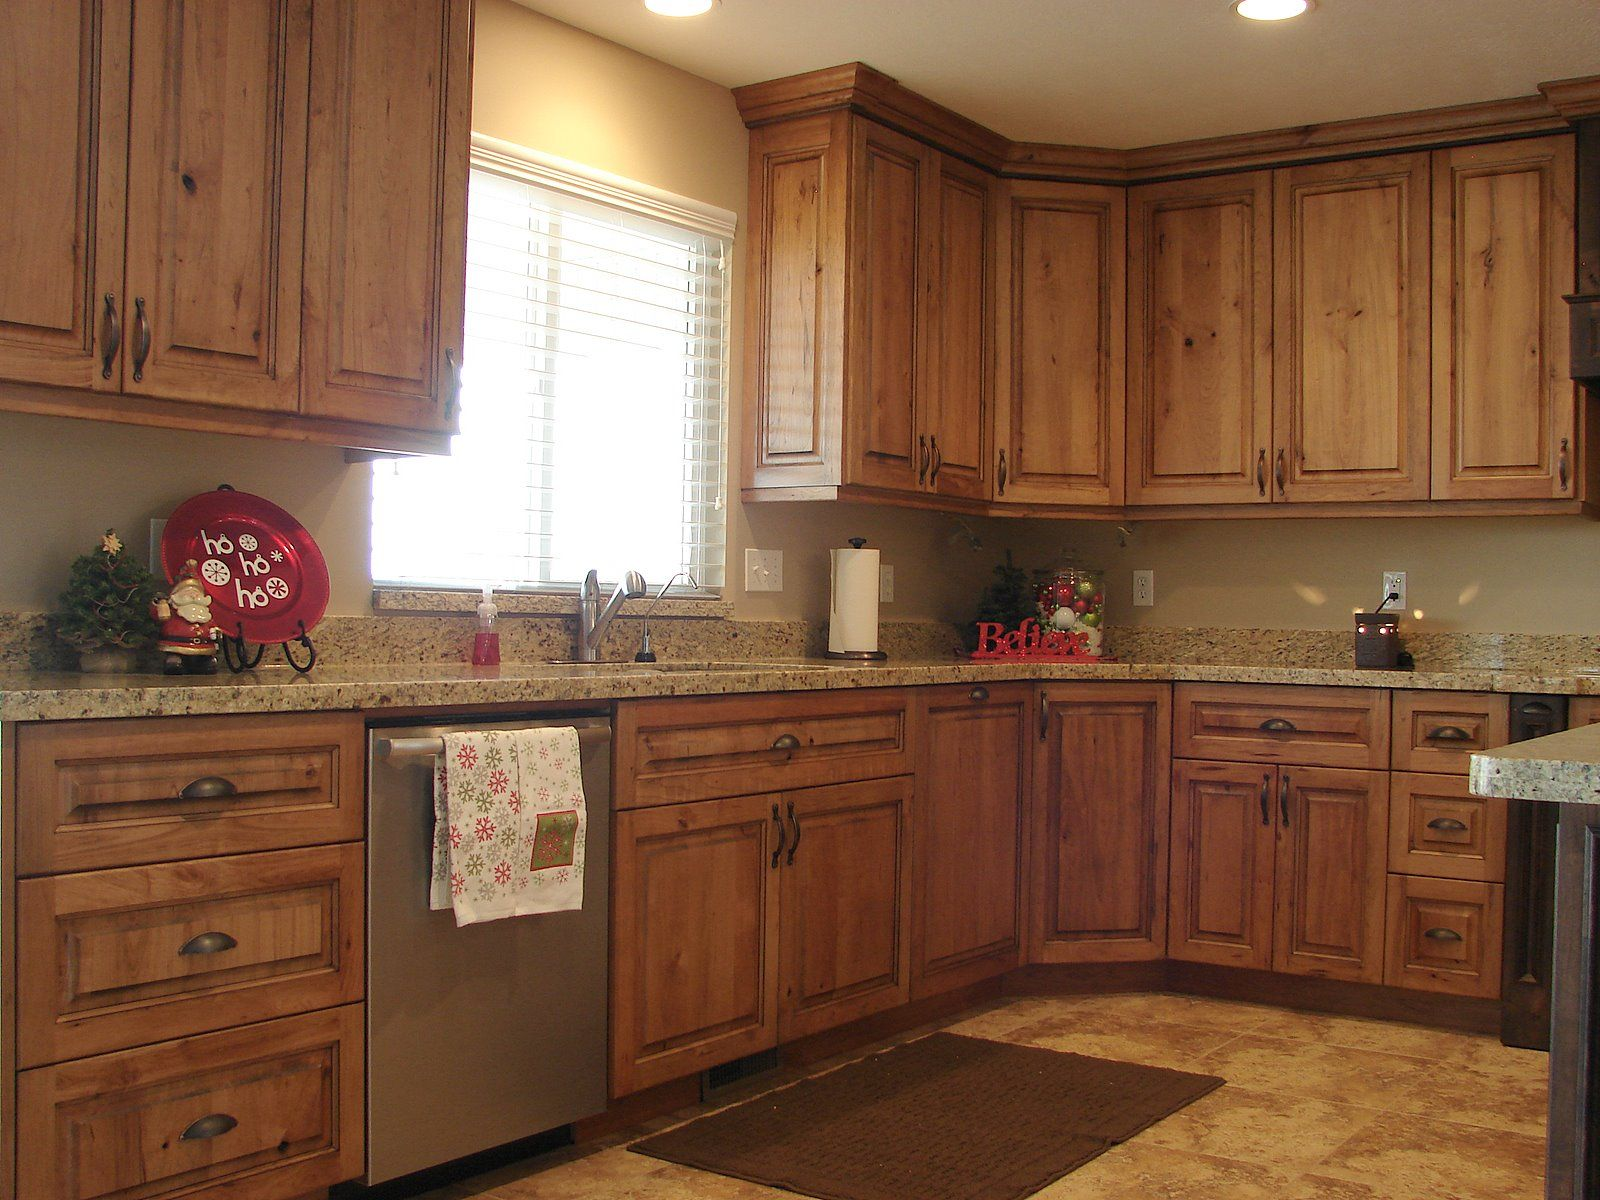 Rustic Cherry Cabinets Rustic Kitchen Cabinets Best Kitchen Cabinets Rustic Cherry Cabinets